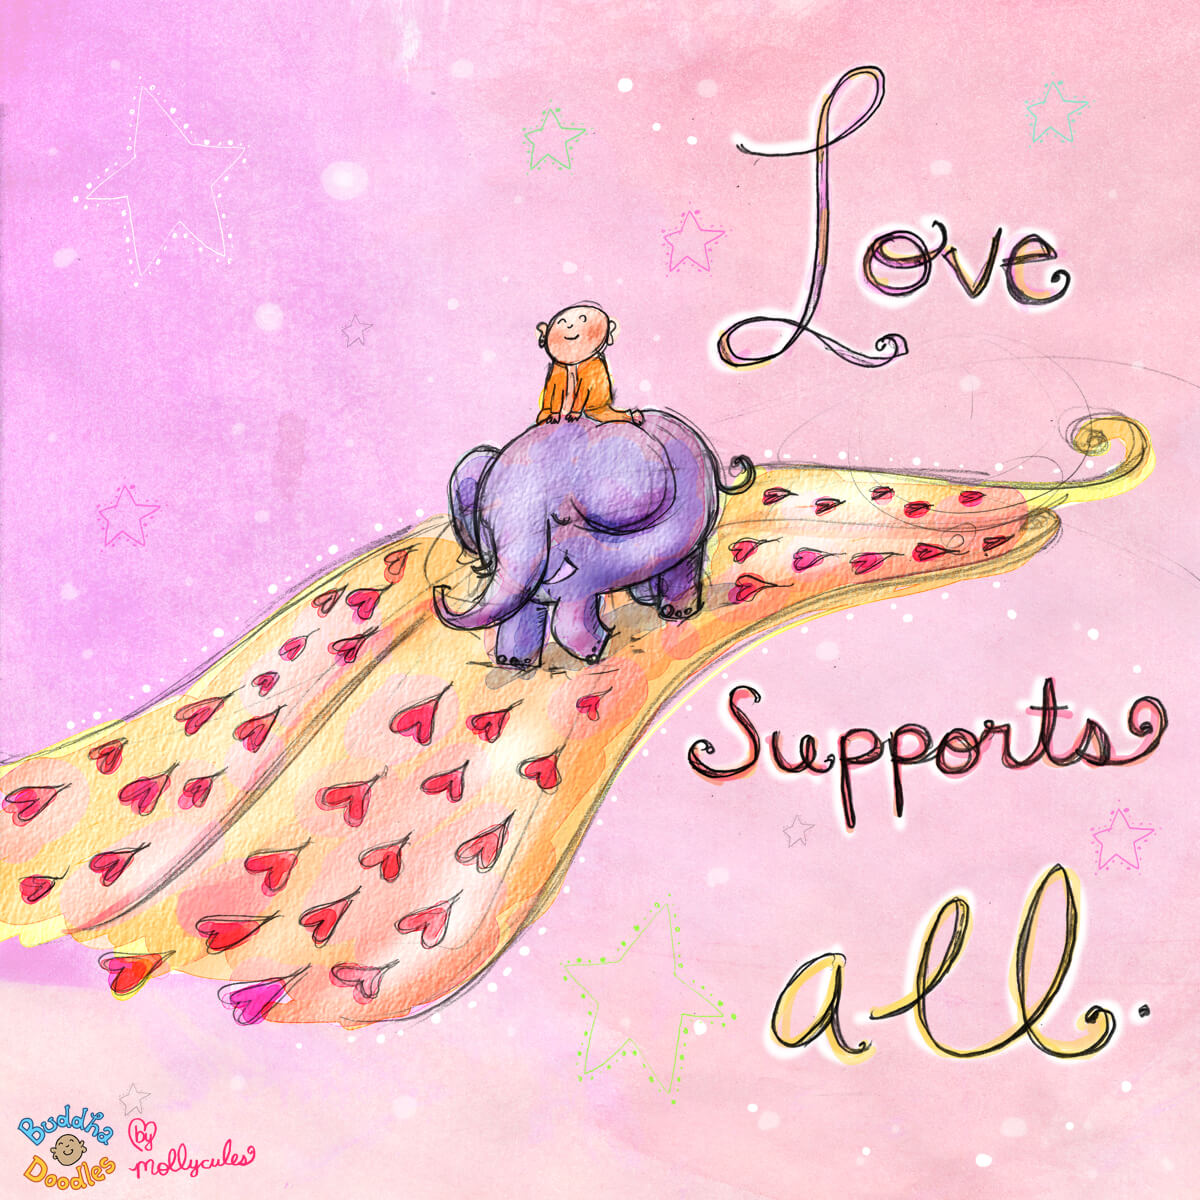 Love Supports All